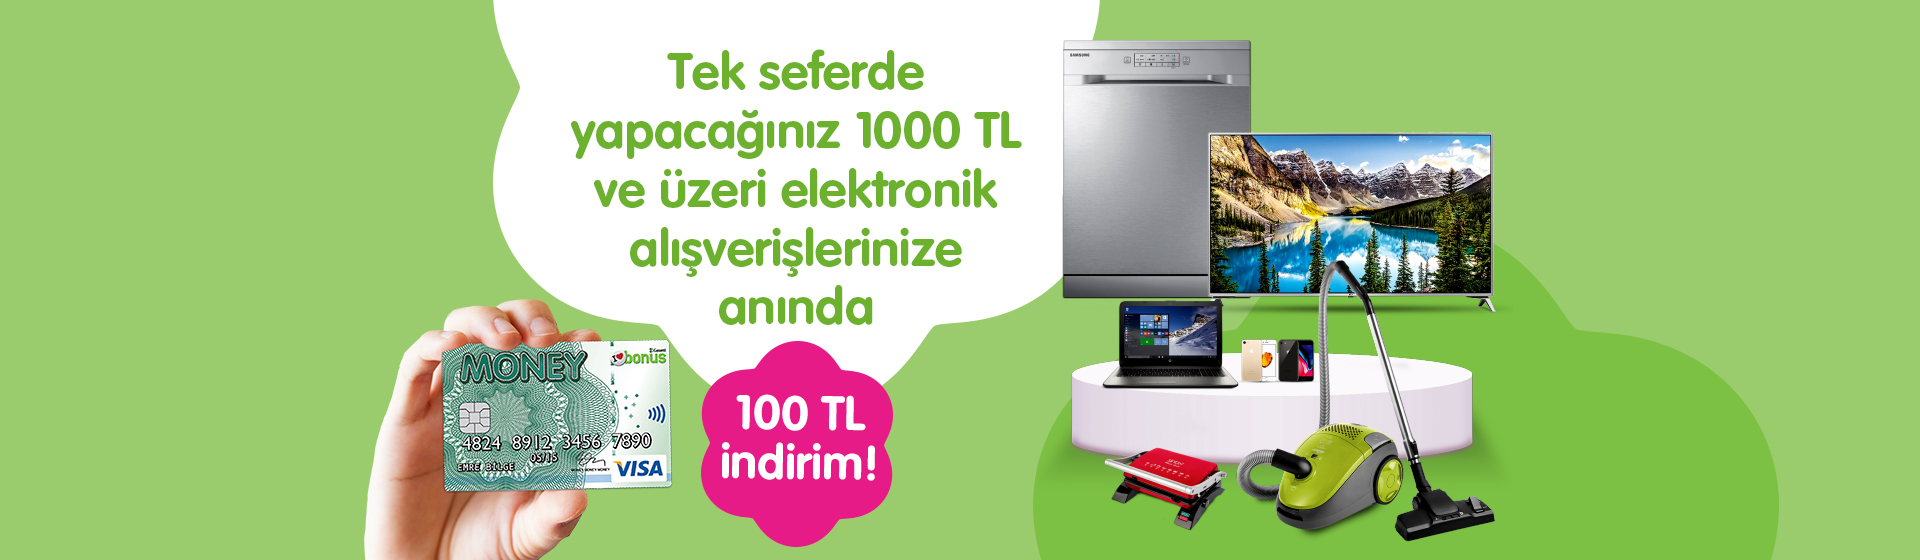 Money Bonus Elektronik Kampanyası